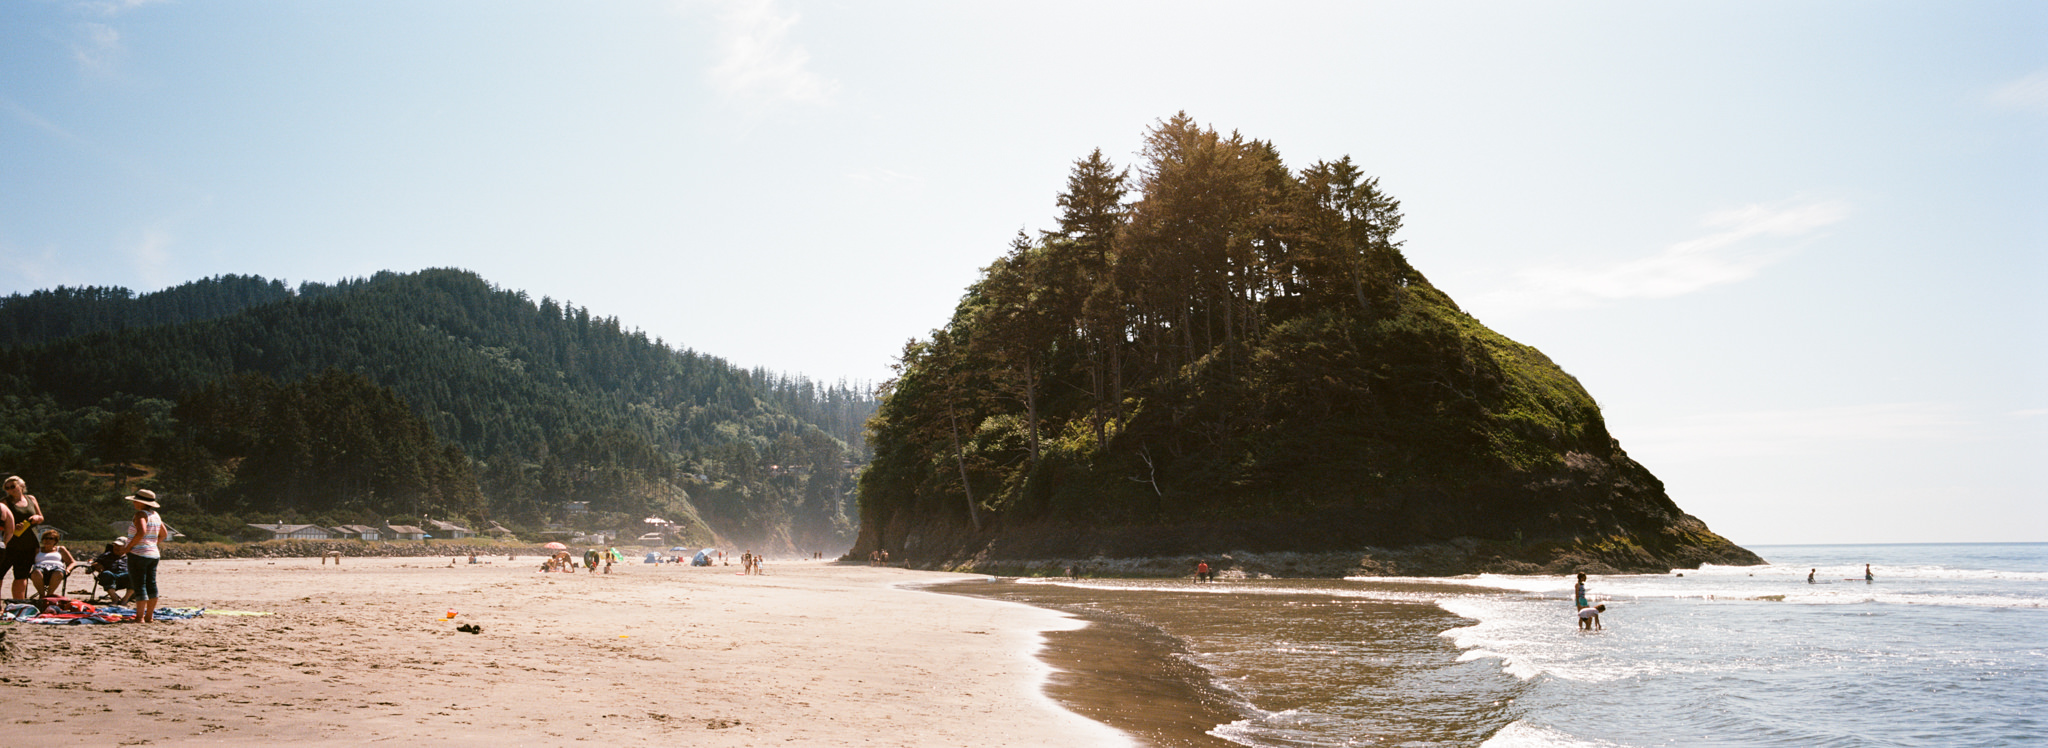 oregon-coast-thewarmtharoundyou-portland-wedding-photographers-102.jpg